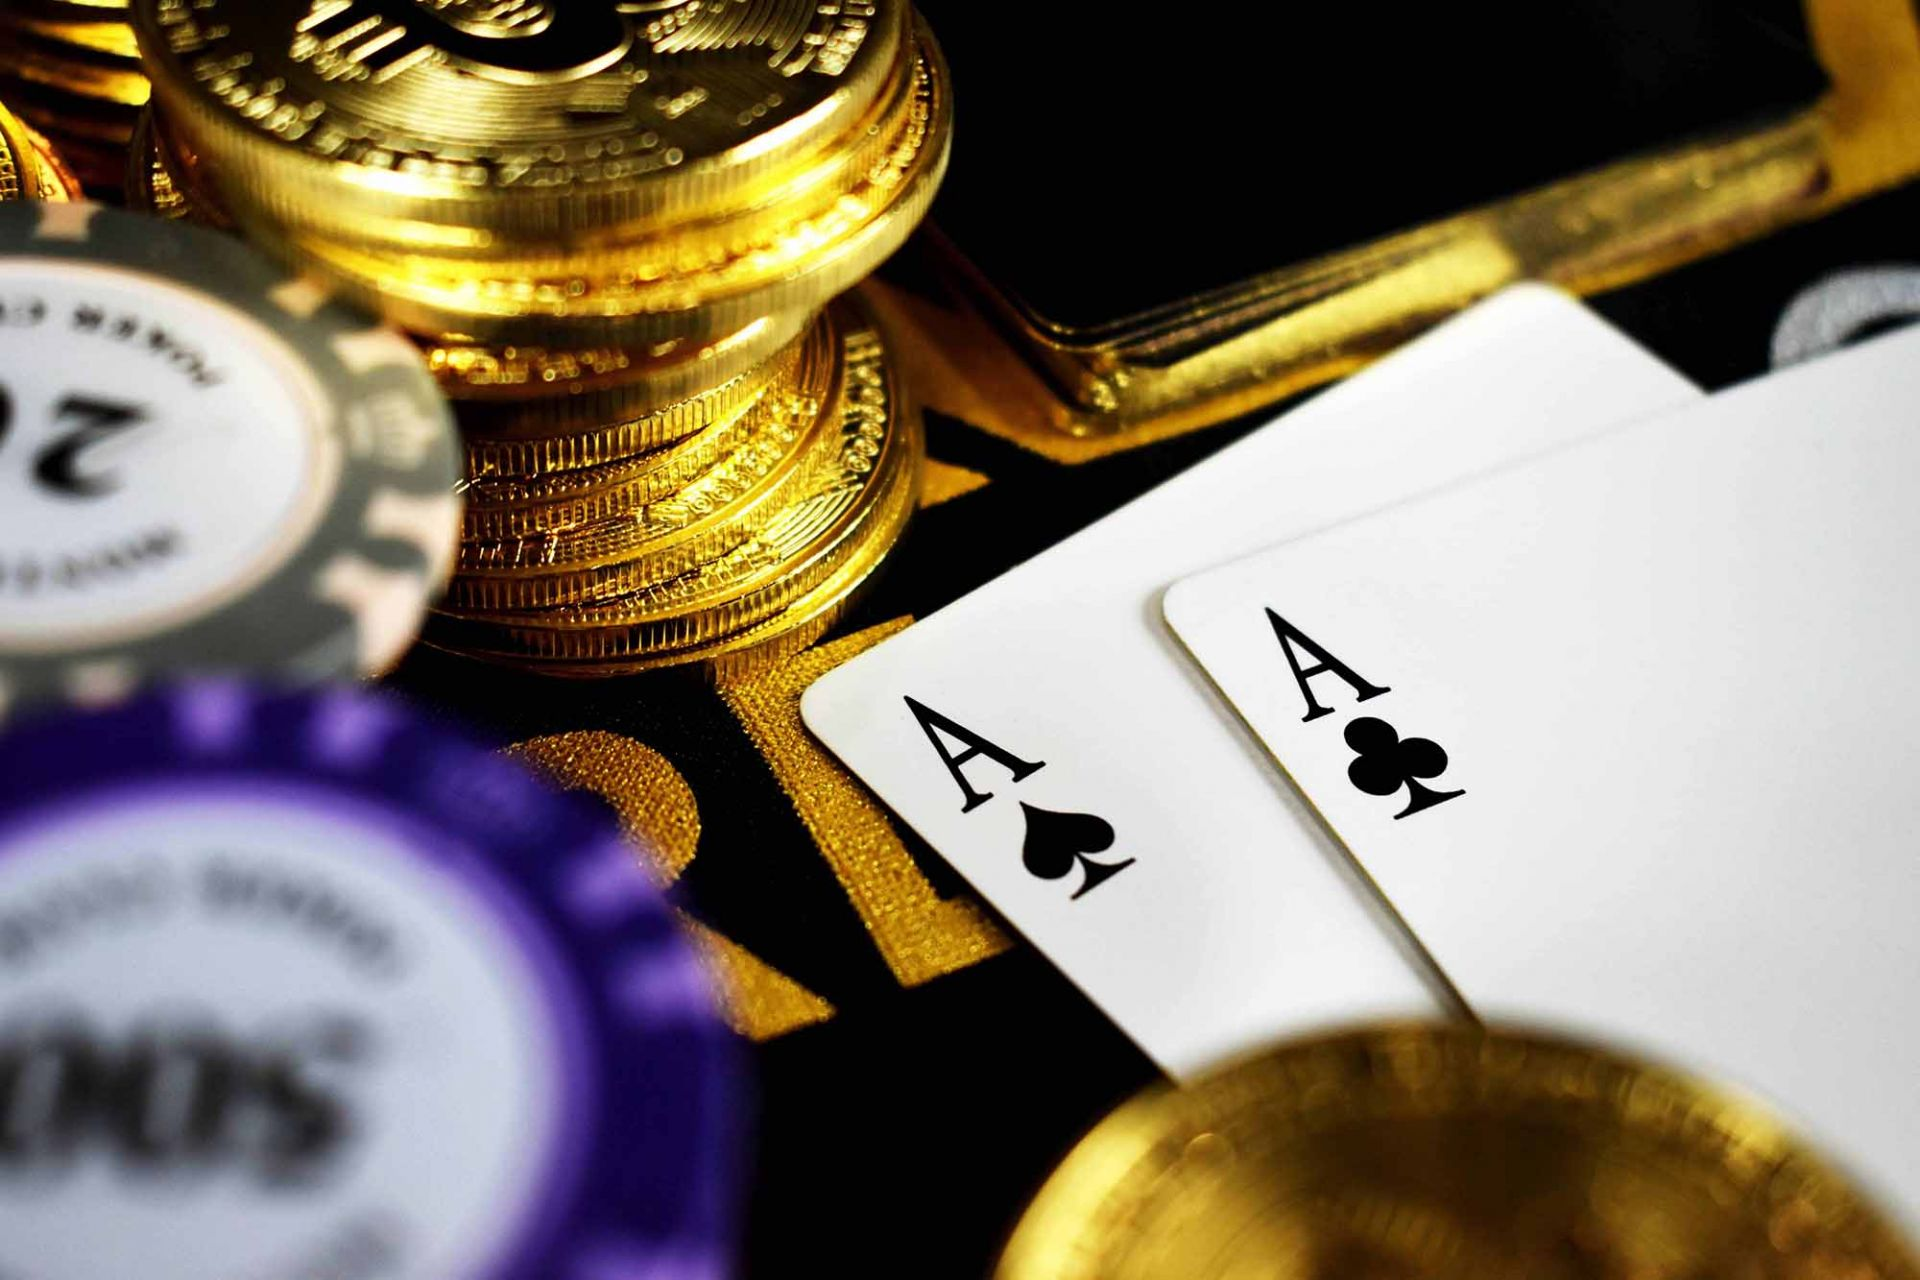 betting sites in india How to Play Blackjack - Basic Strategy